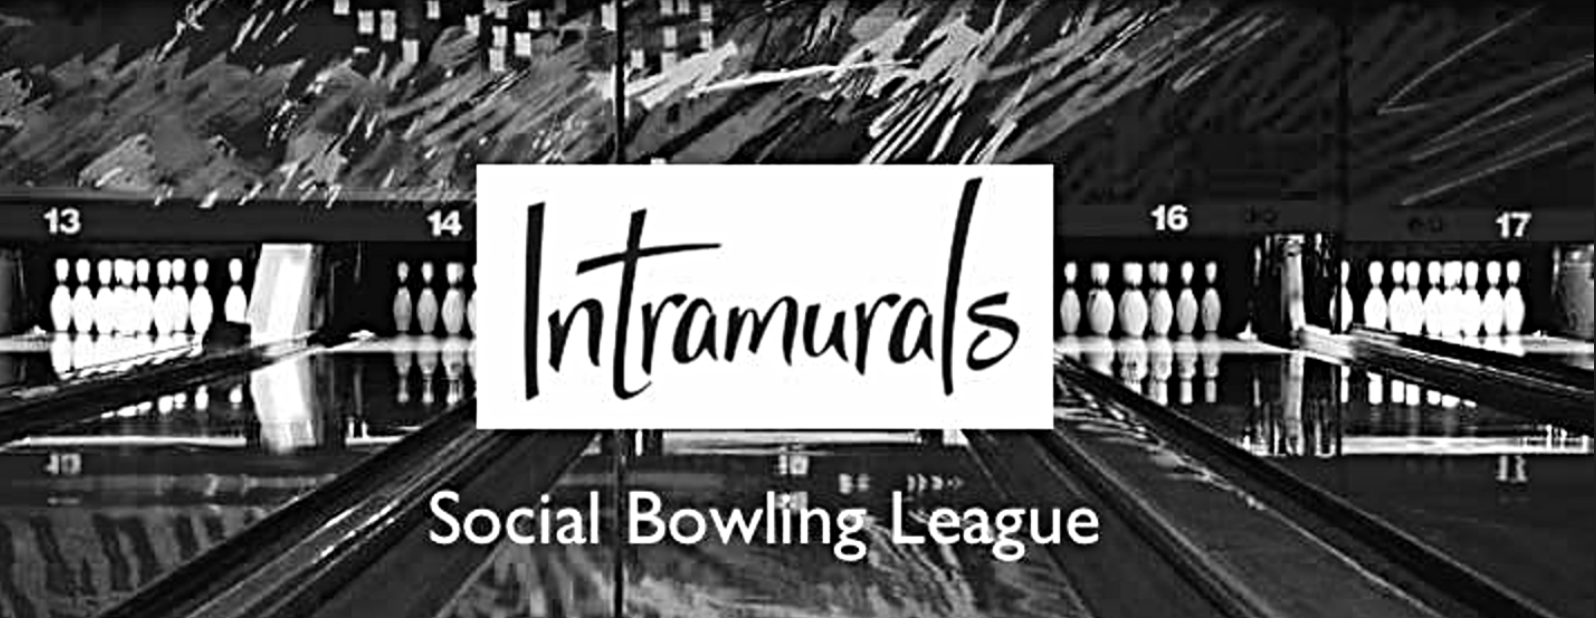 Intramurals Social Bowling League